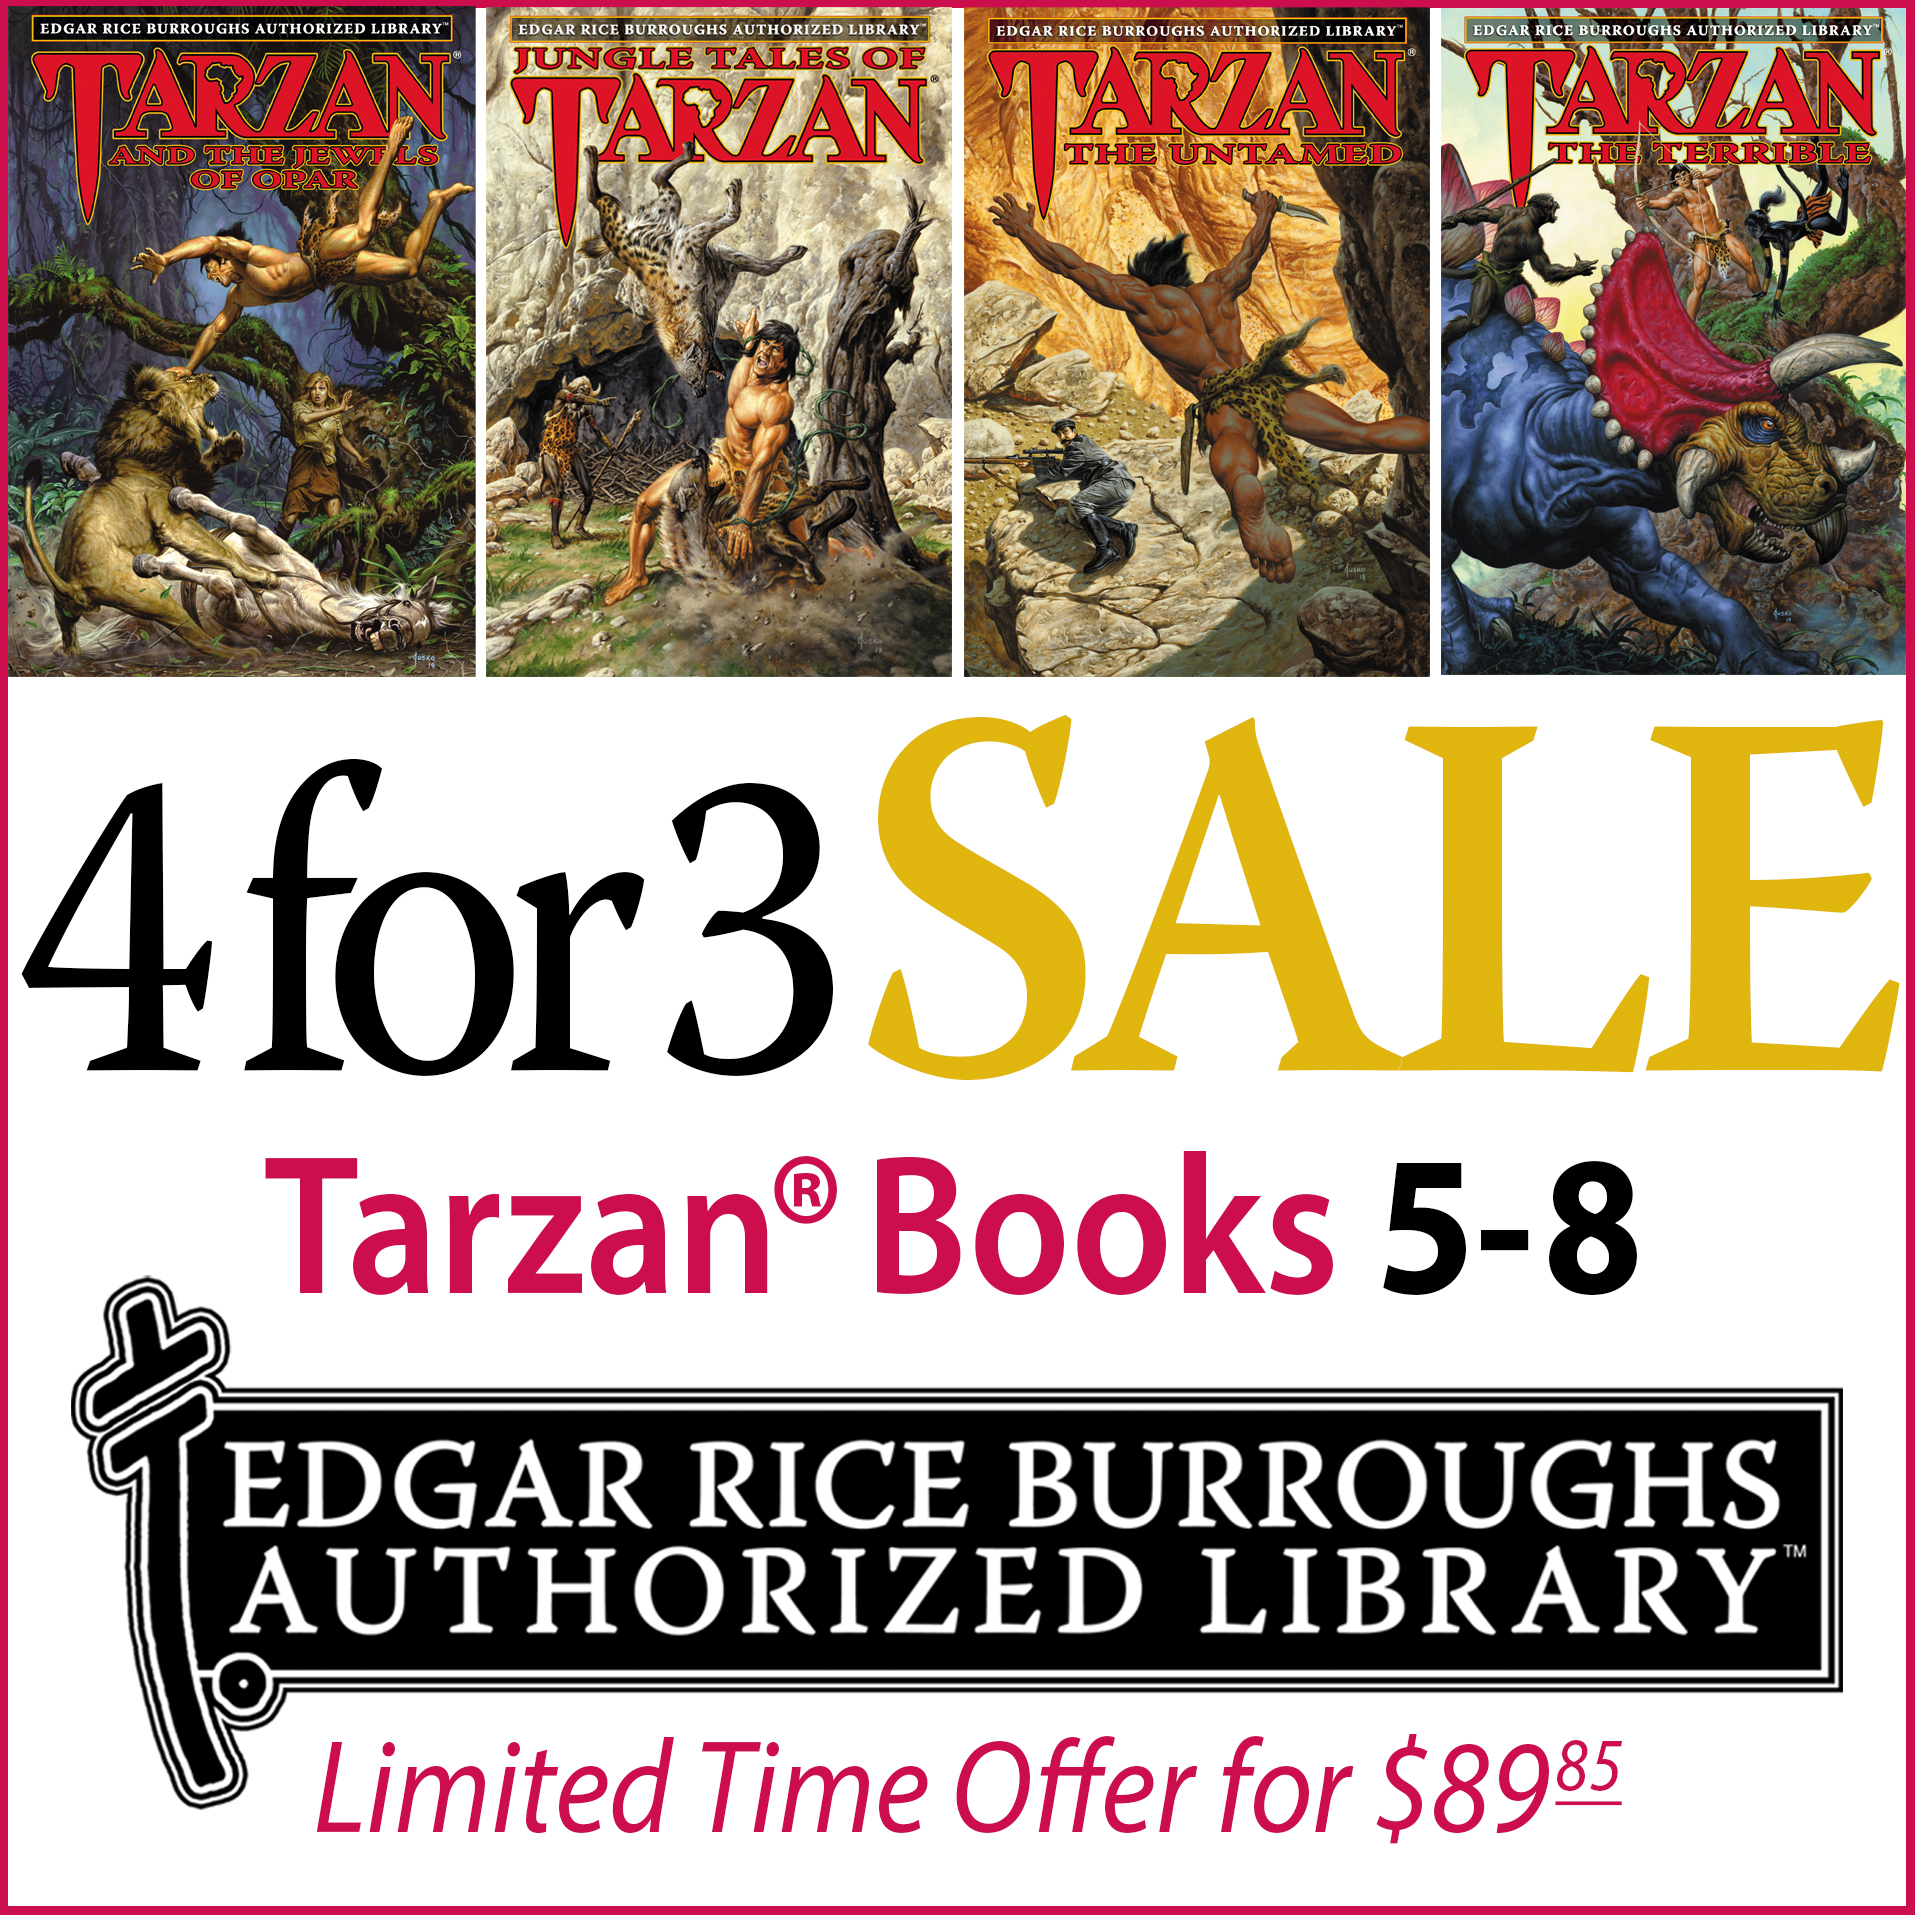 Edgar Rice Burroughs Authorized Library Sale (Books 5-8)